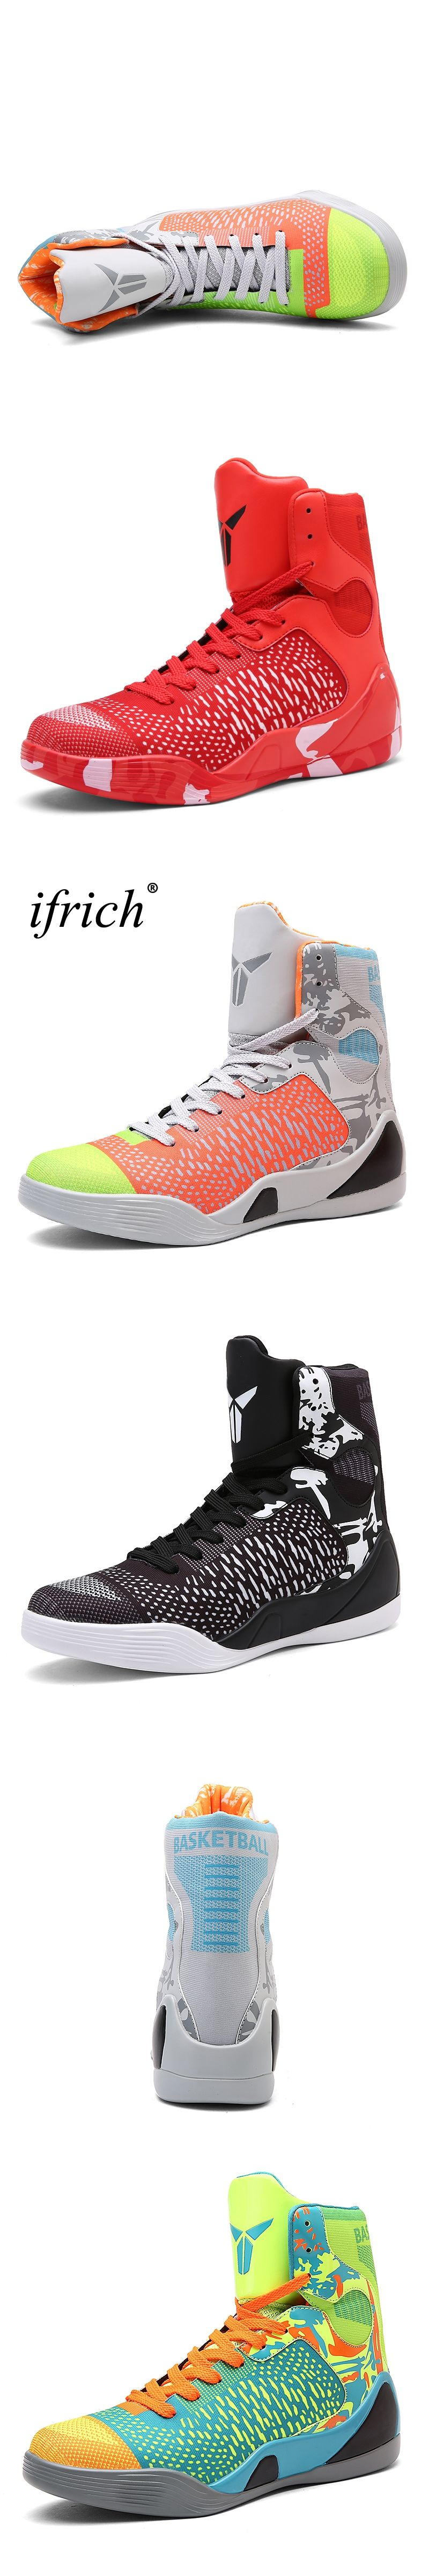 998f63f77bd Mens Basketball Sneakers High Top Basketball Shoes For Men Black Green  Shoes Training Men Leather